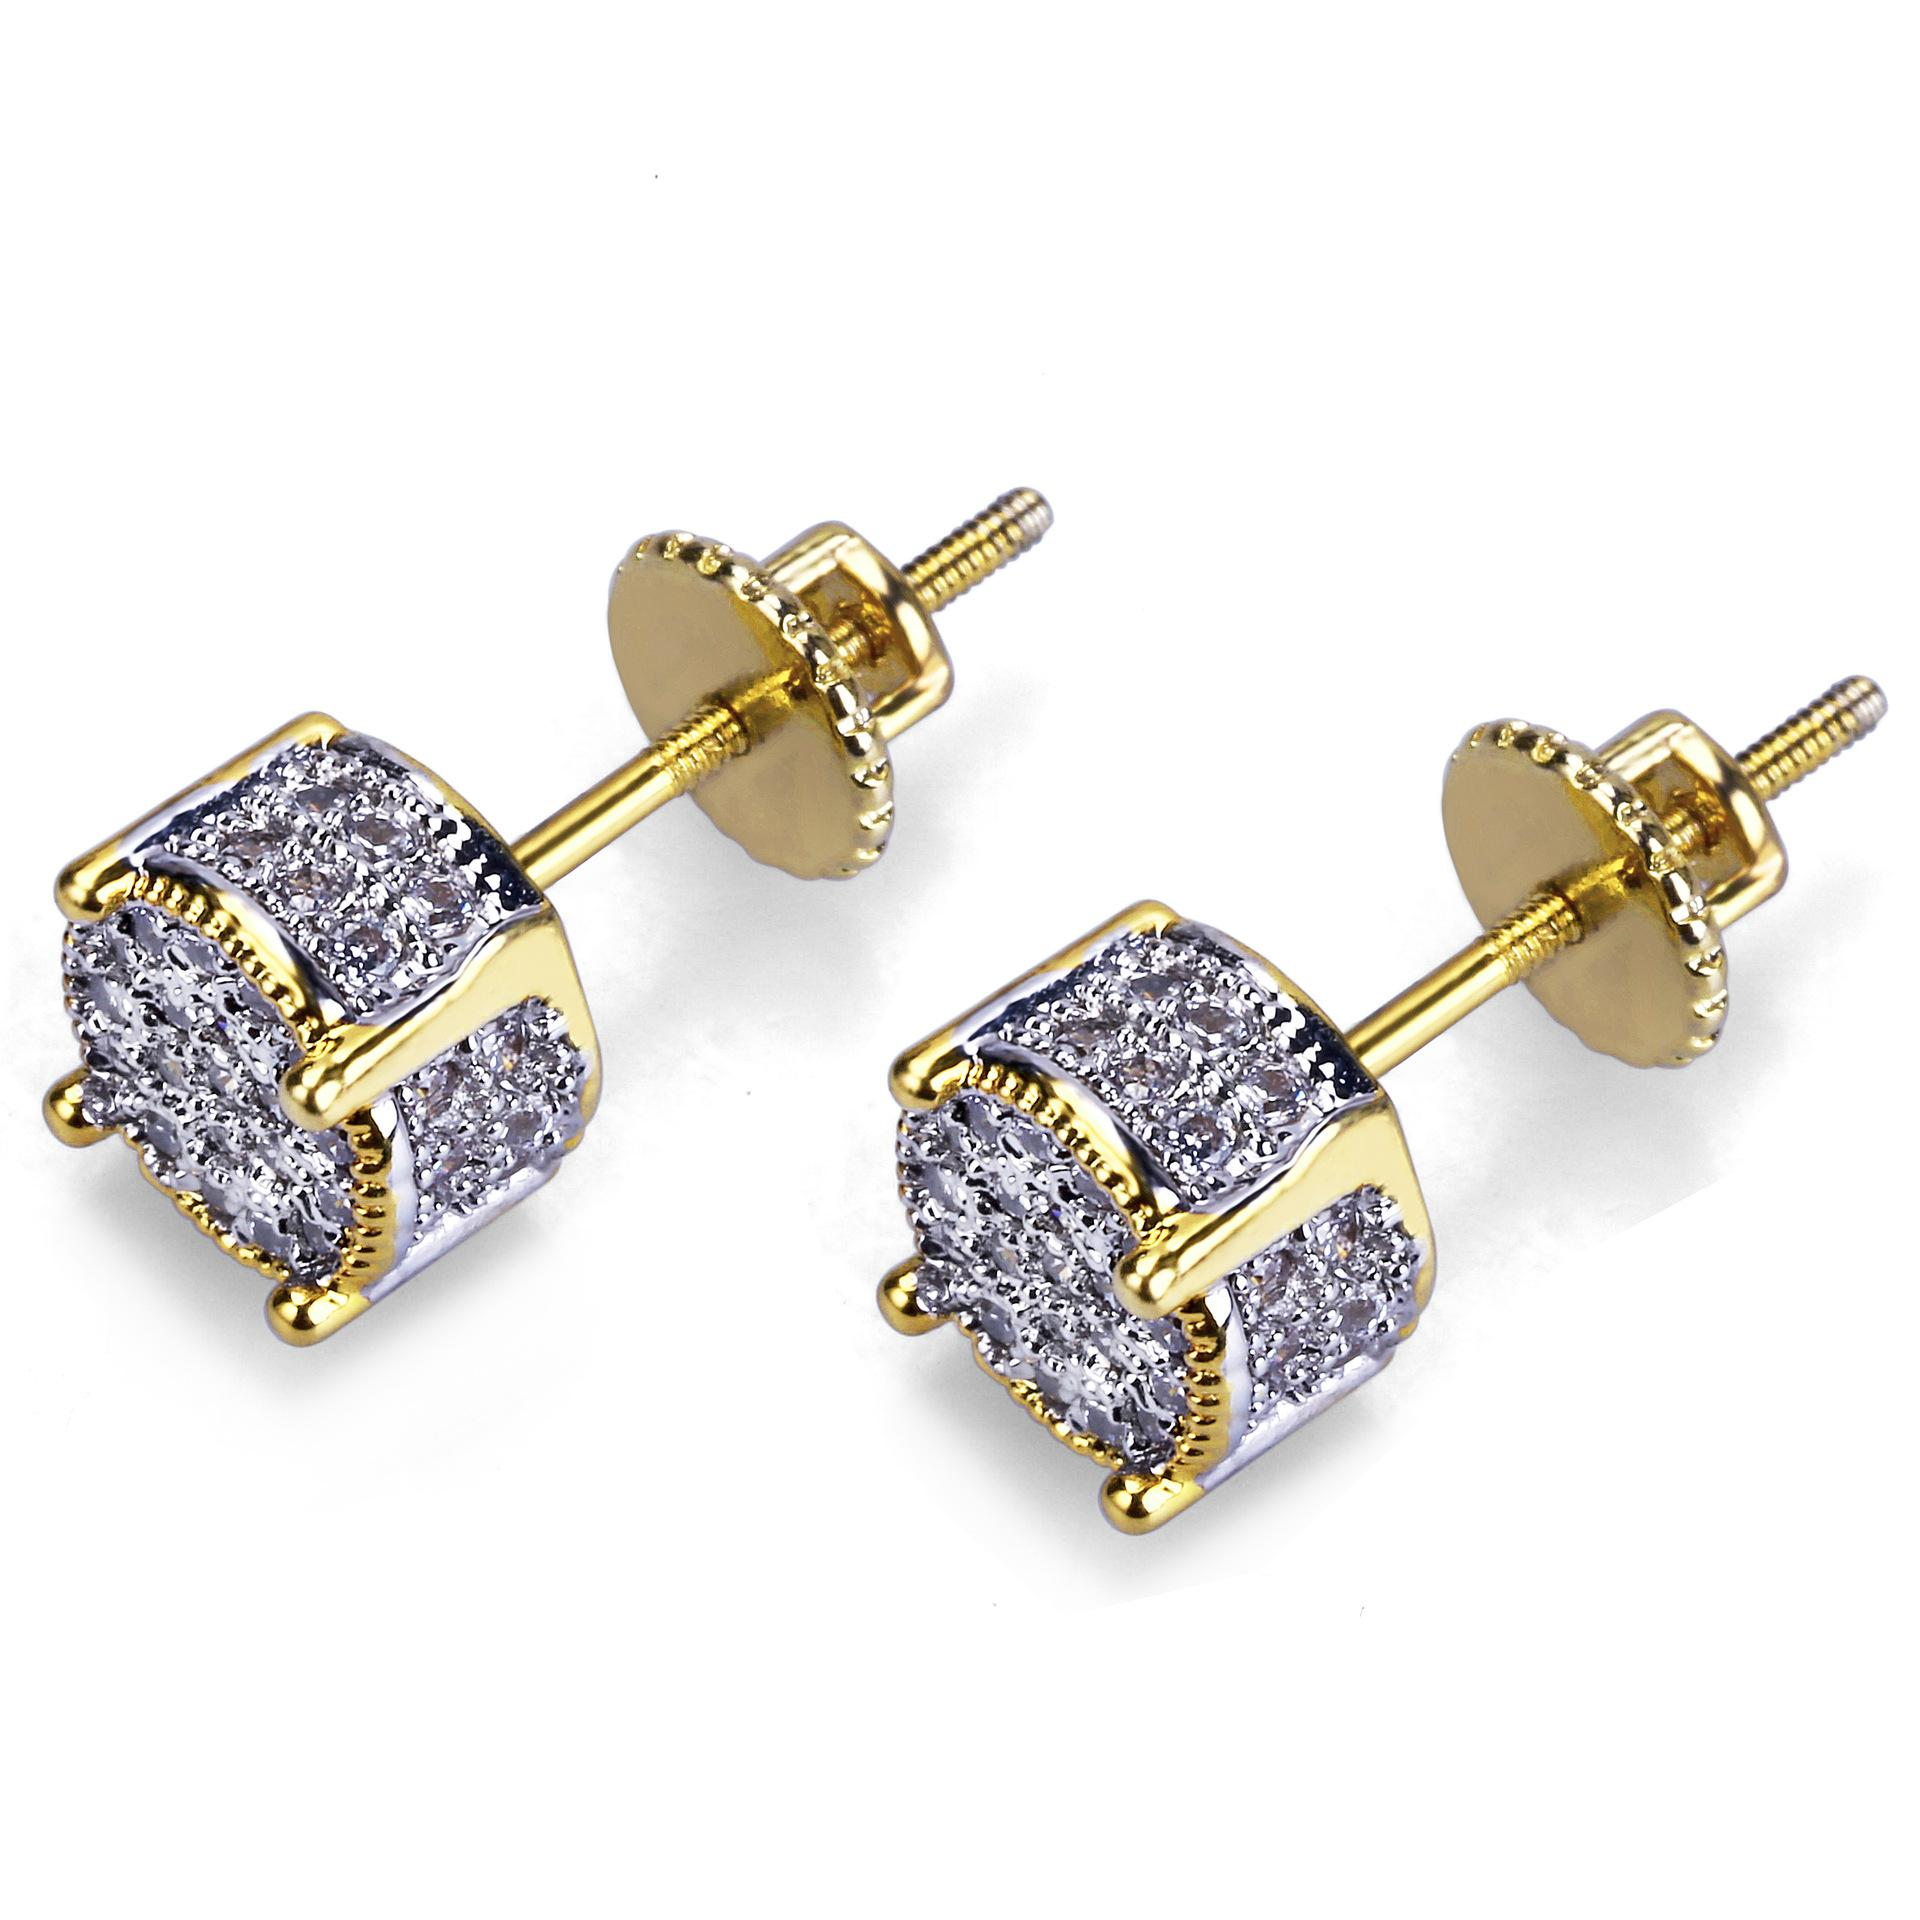 Hip Hop Earrings Micro-inlaid Zircon Round Men and Women 18K Gold Plated Luxury Earrings Hot Sale